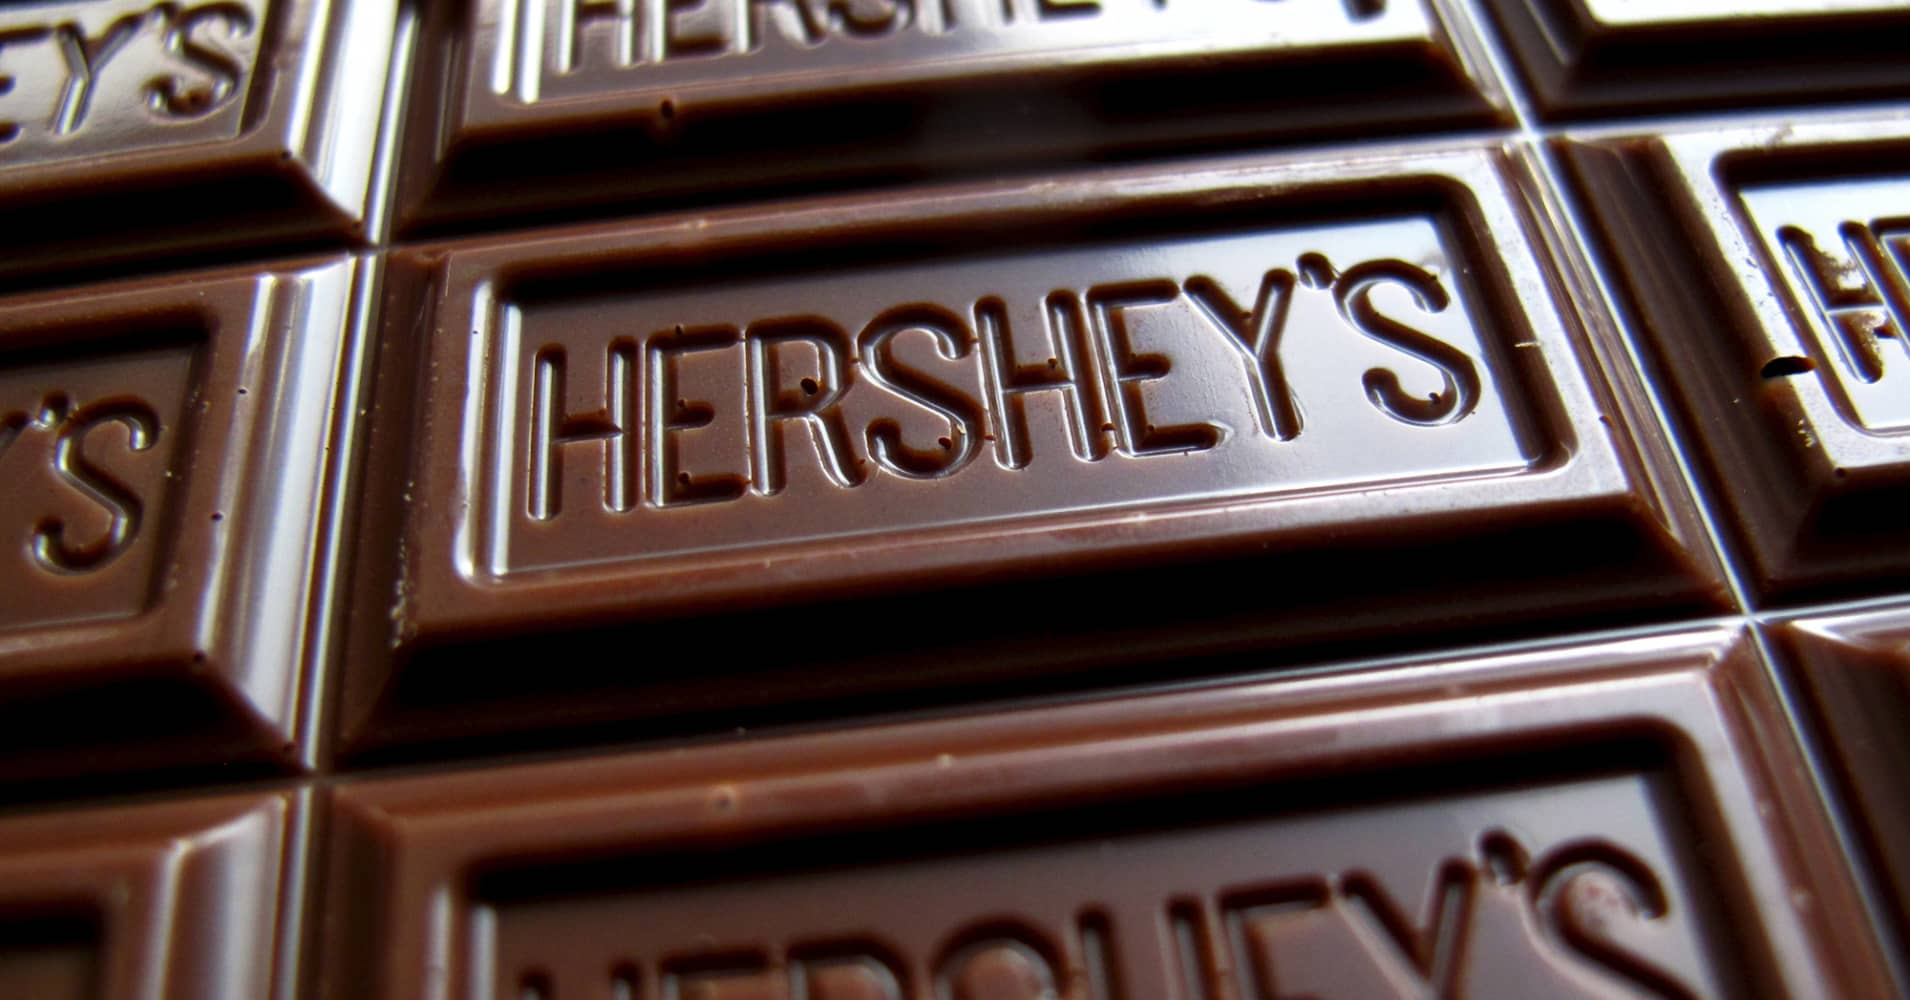 Nestle US confectionery business draws attention from Hershey, others